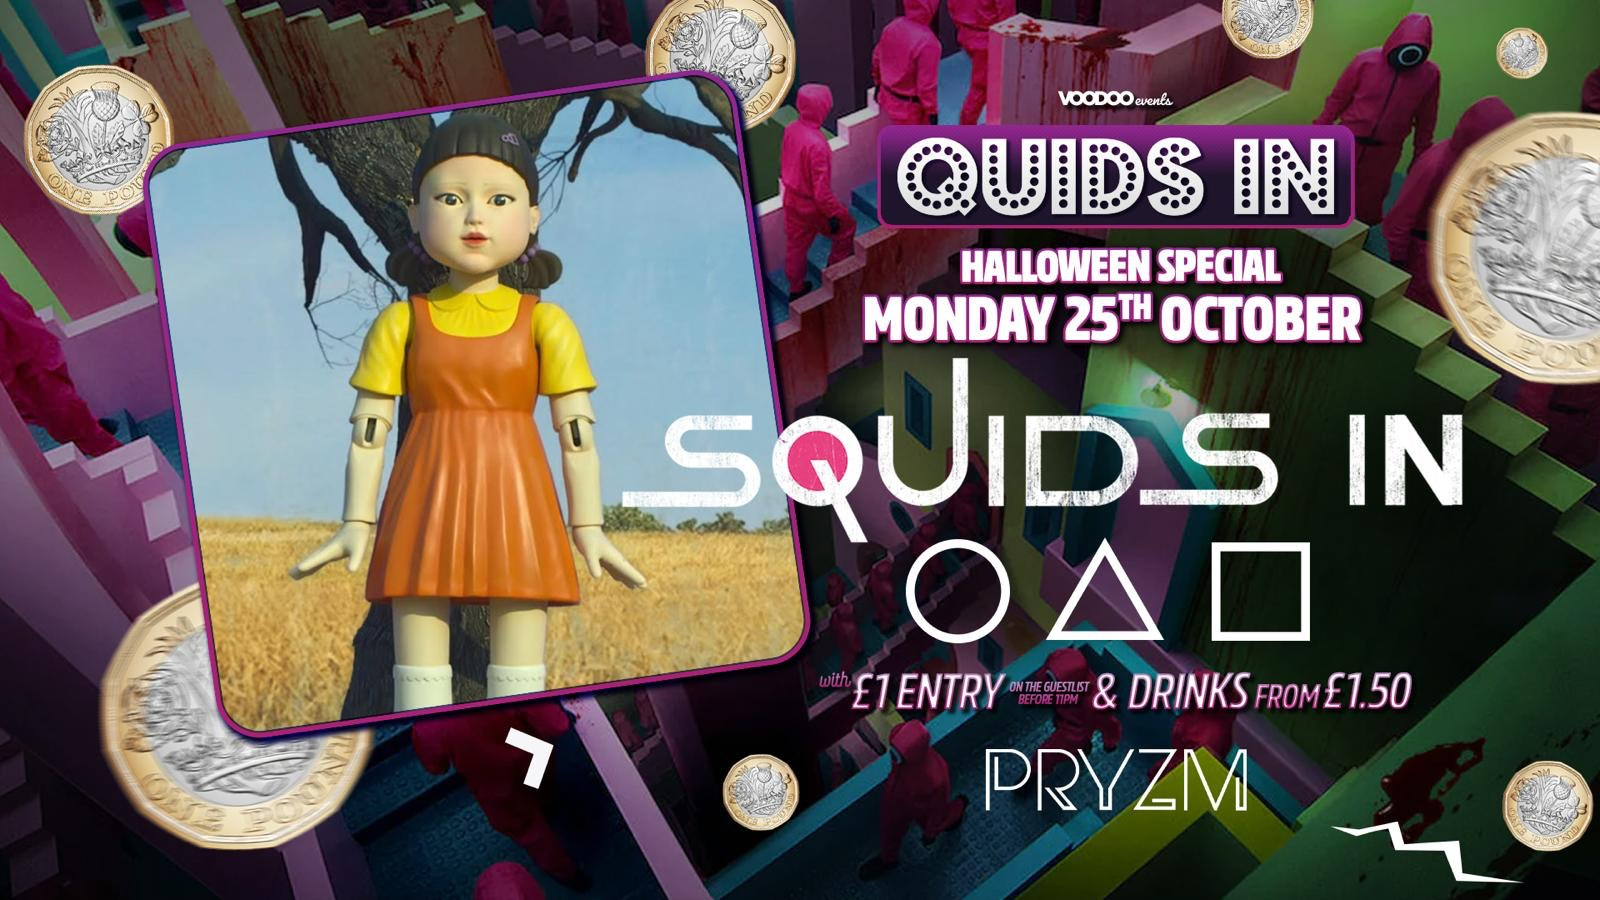 Squids In at PRYZM Halloween Special – 25th October